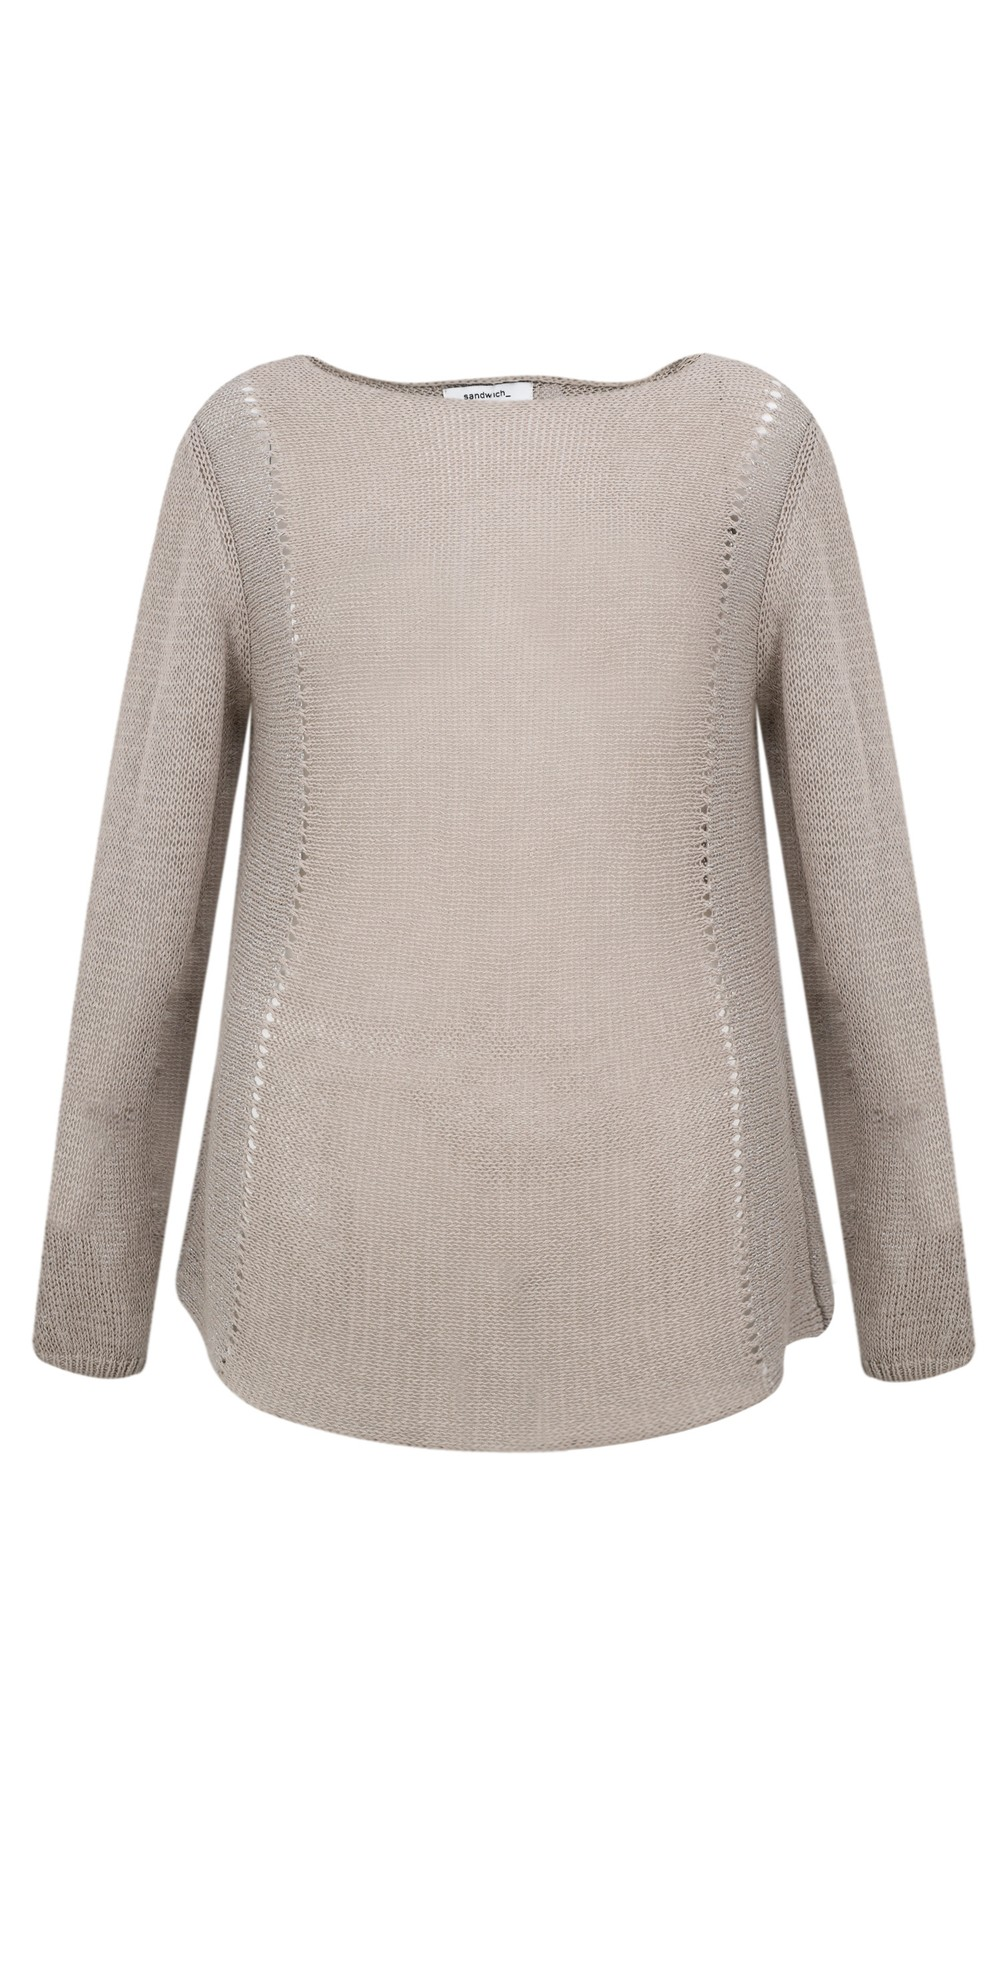 Cotton Sparkle Knit Jumper main image